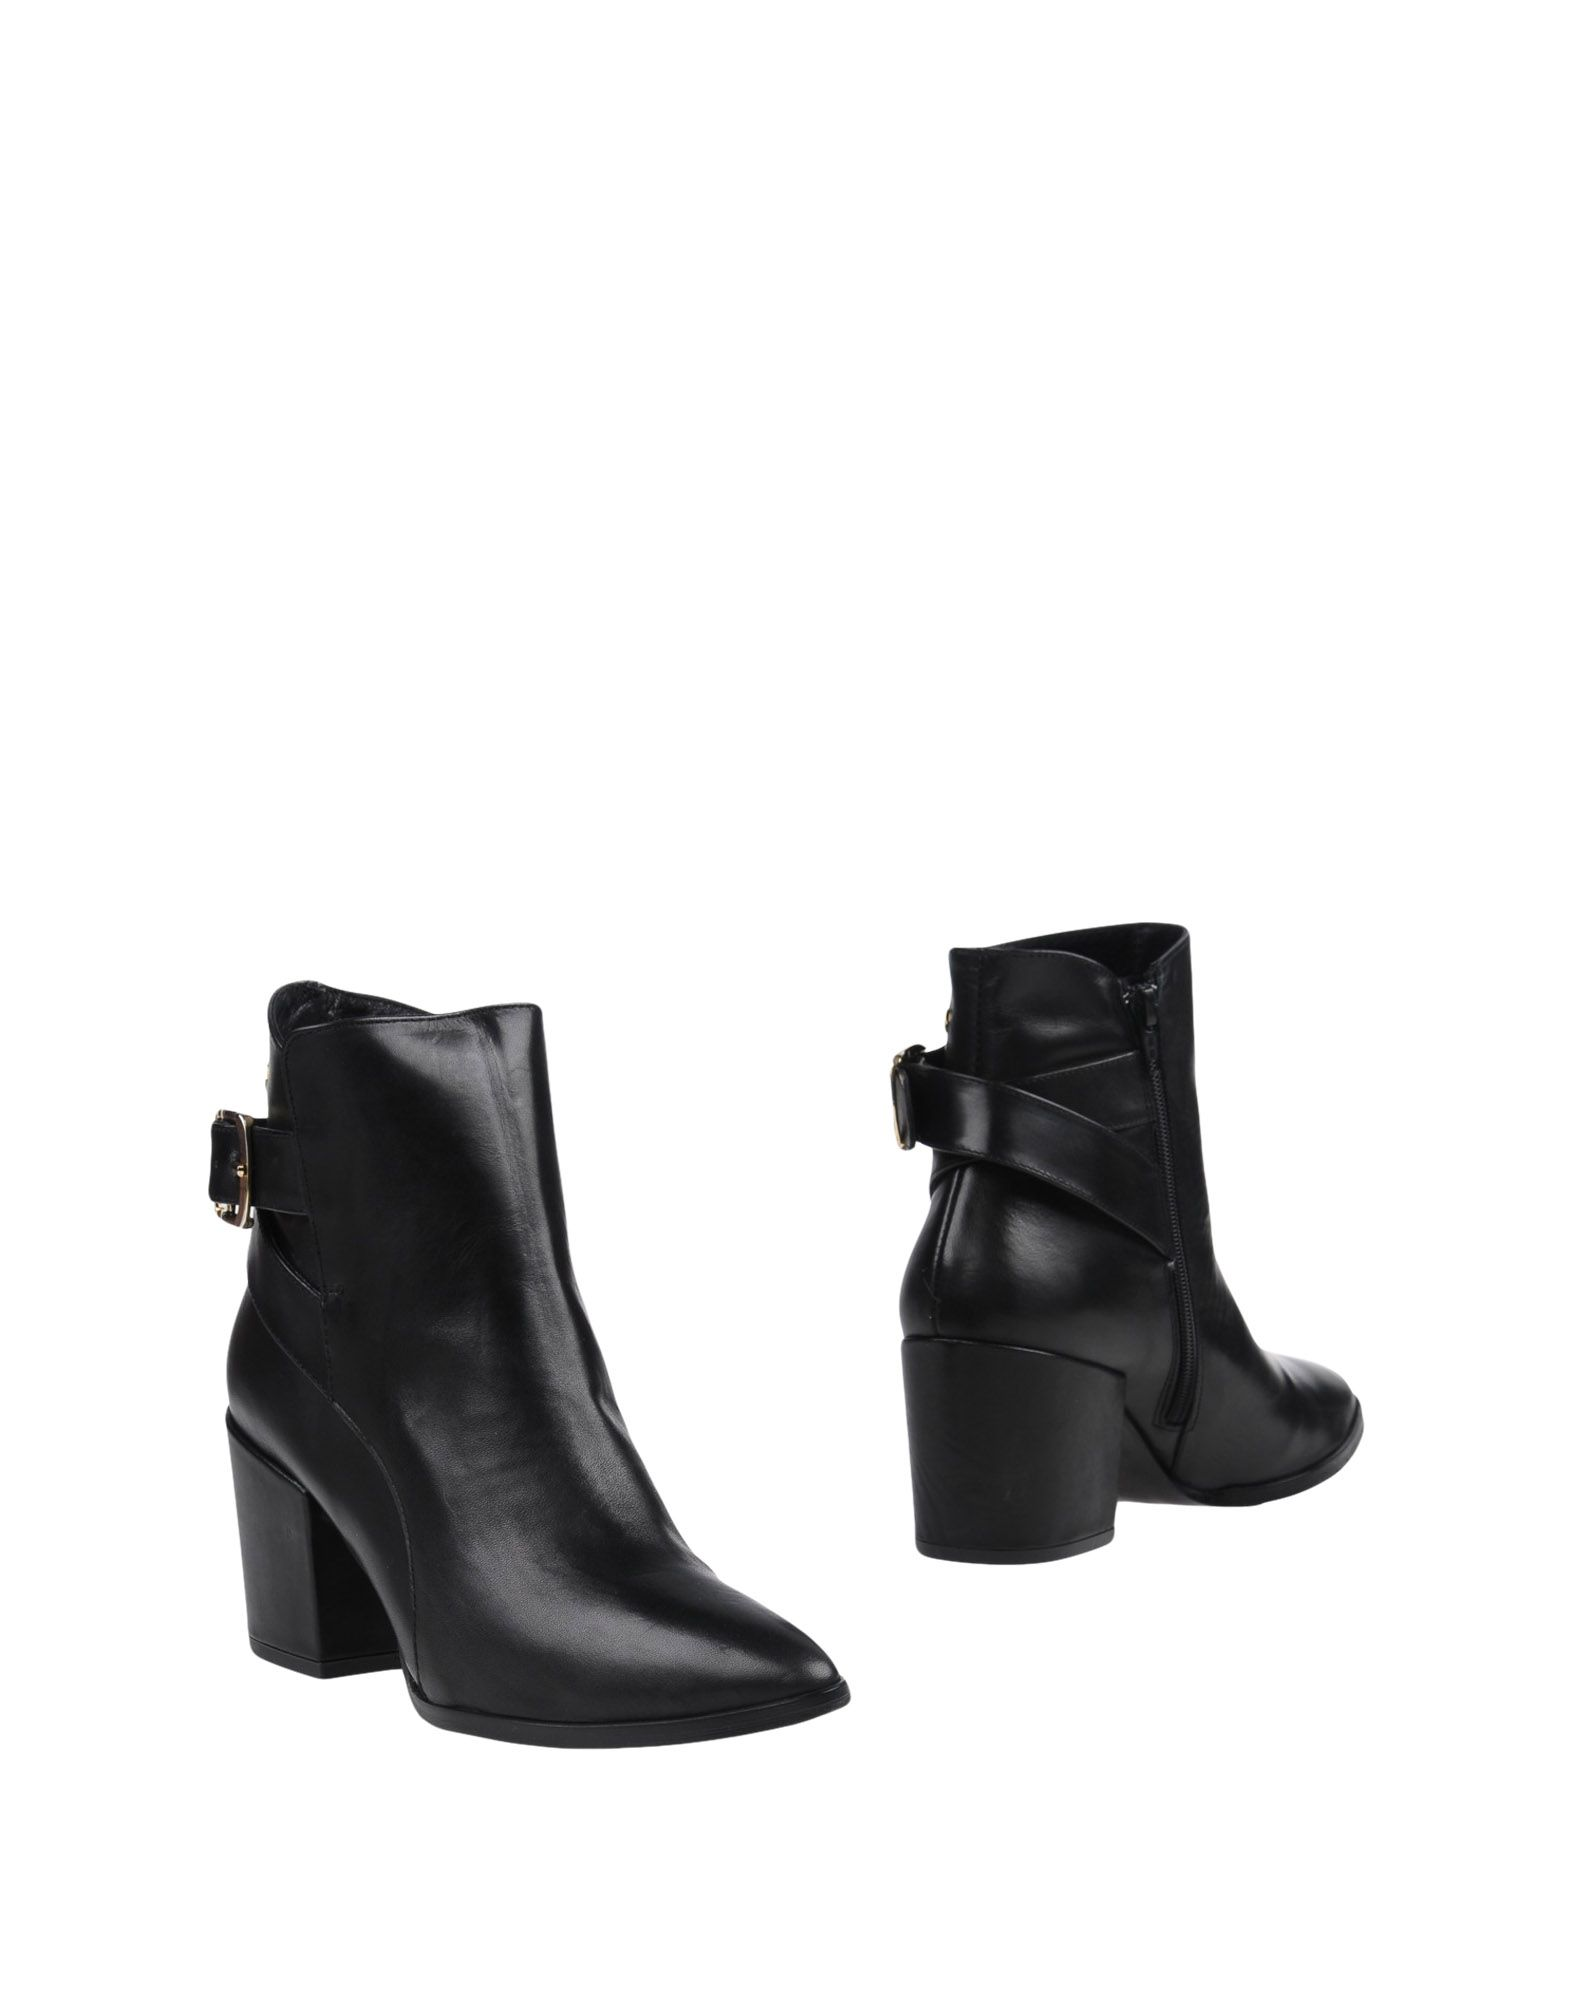 Bottine Cuplé Femme - Bottines Cuplé sur